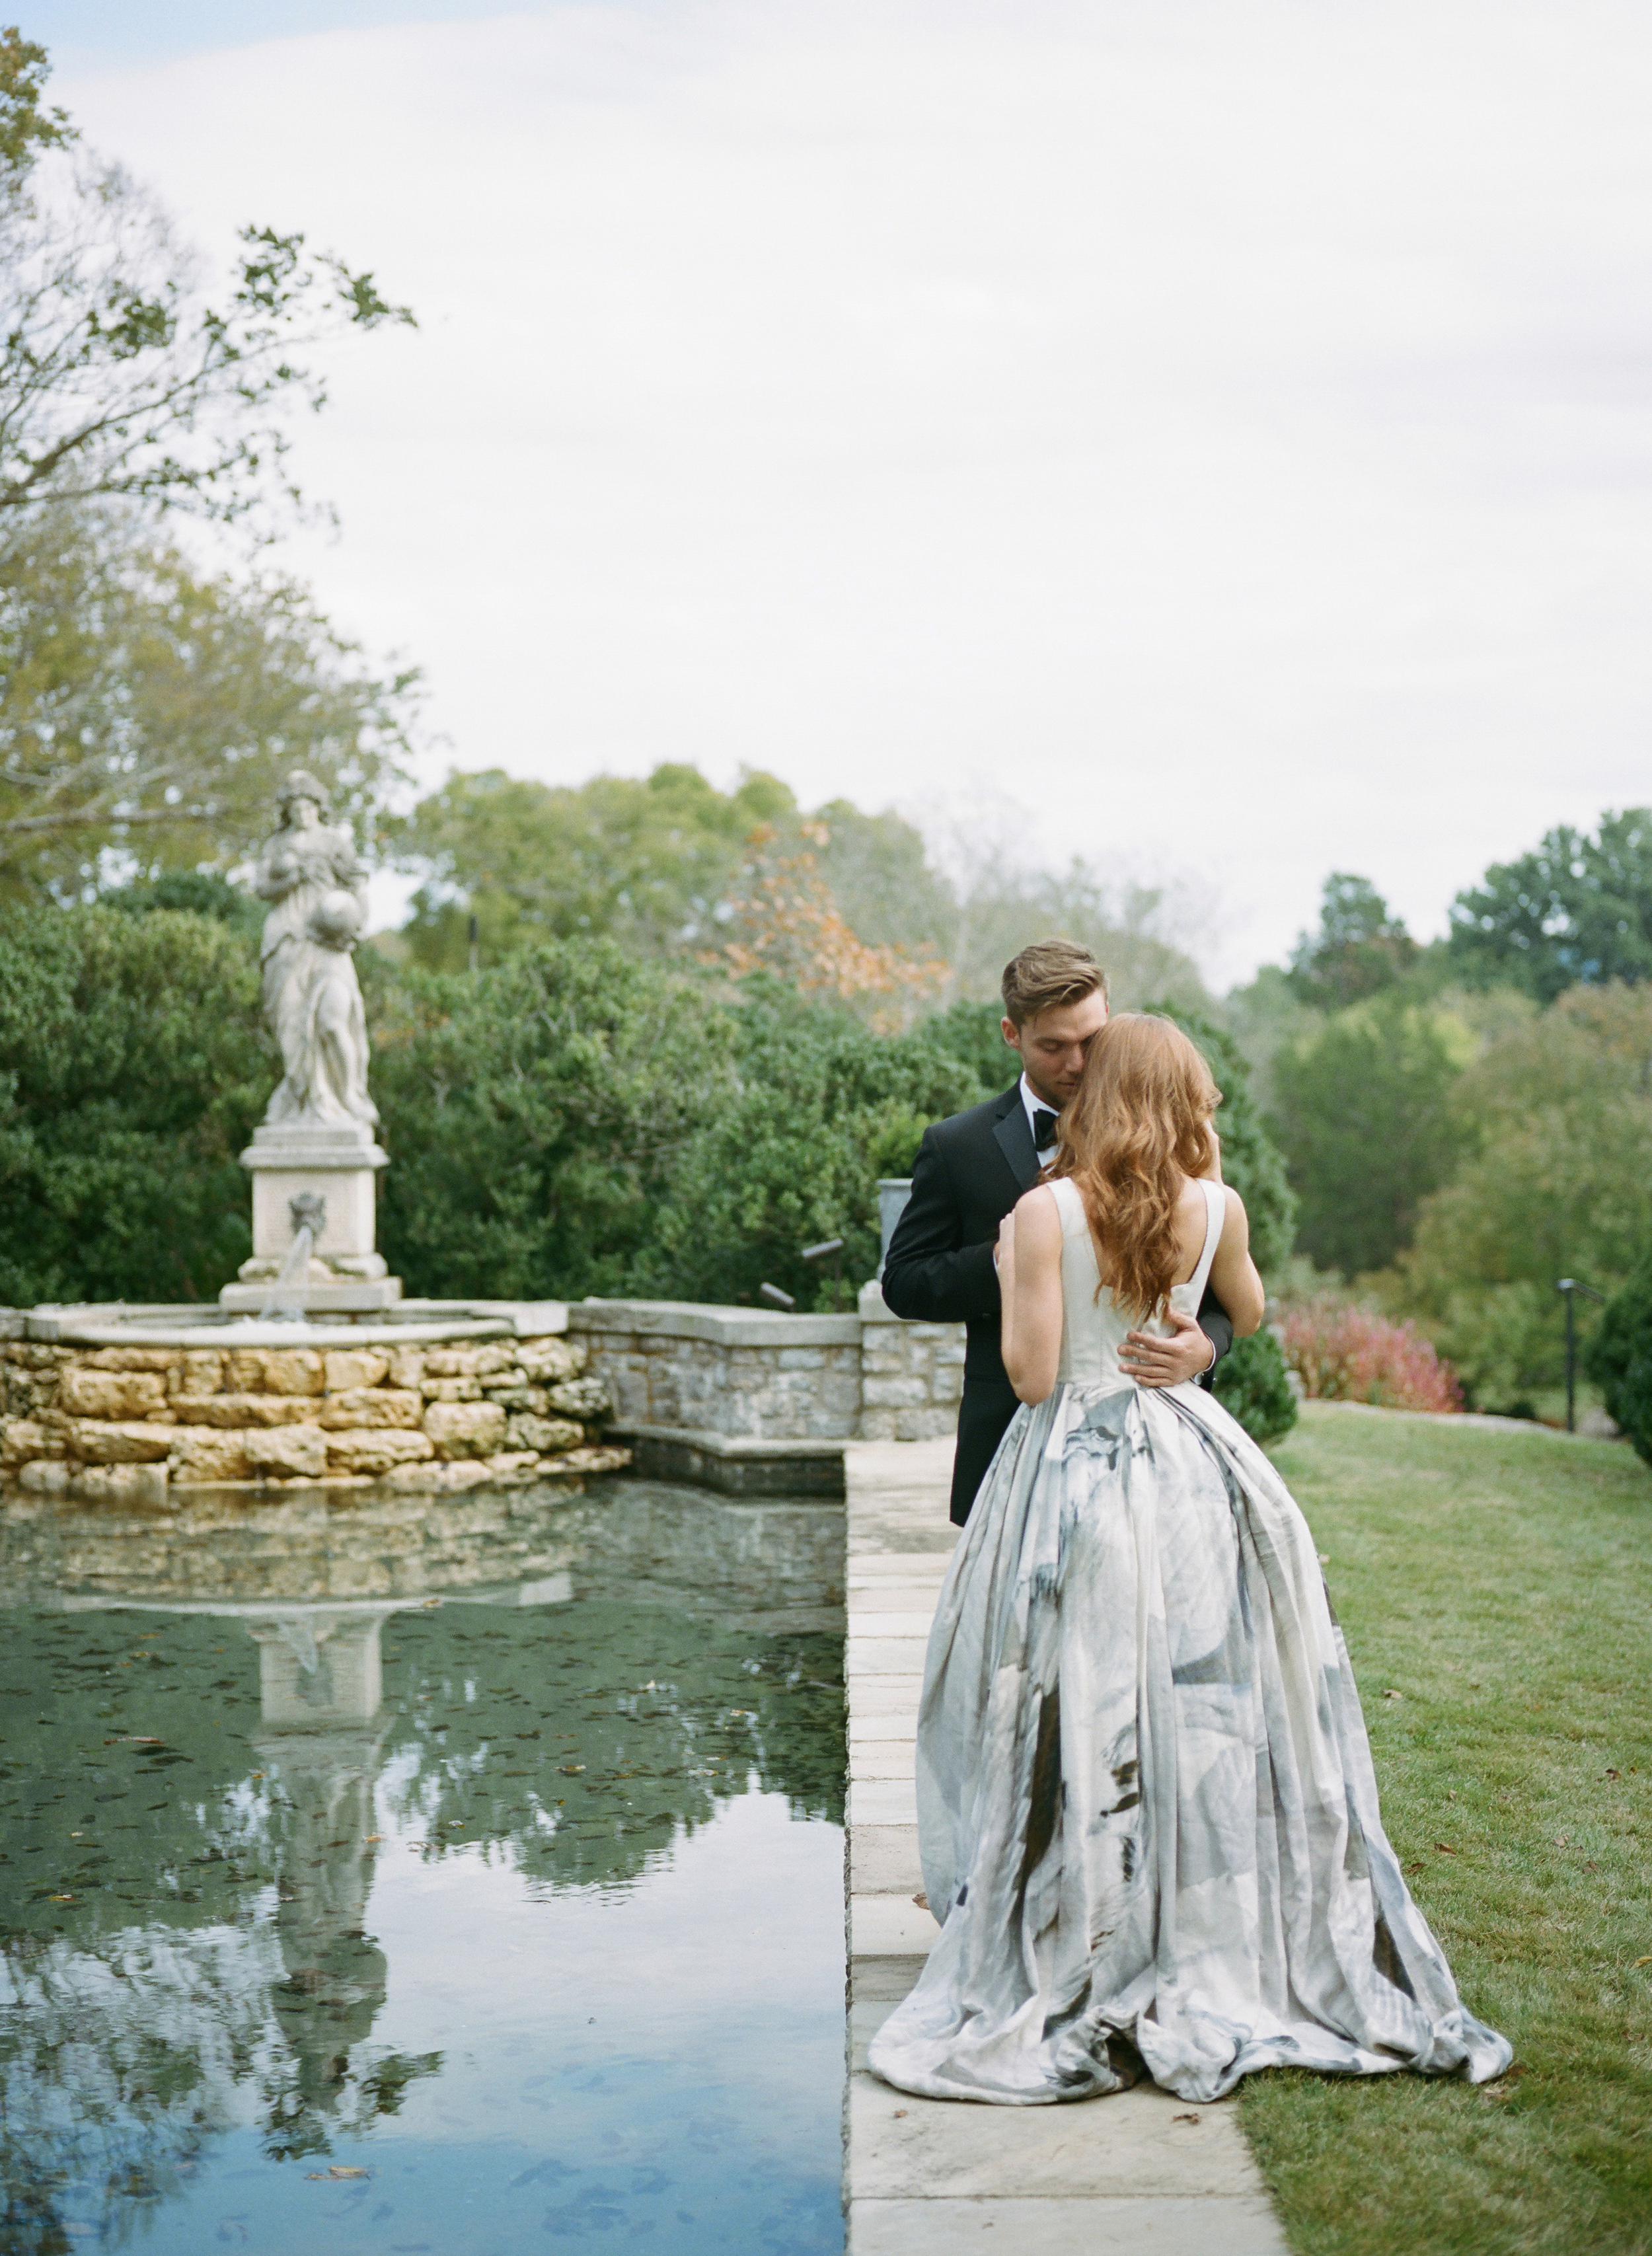 sapphireevents.com | Sapphire Events New Orleans | Luxury Wedding Planning and Design | Austin Gros Photography | Wedding at Cheekwood Gardens